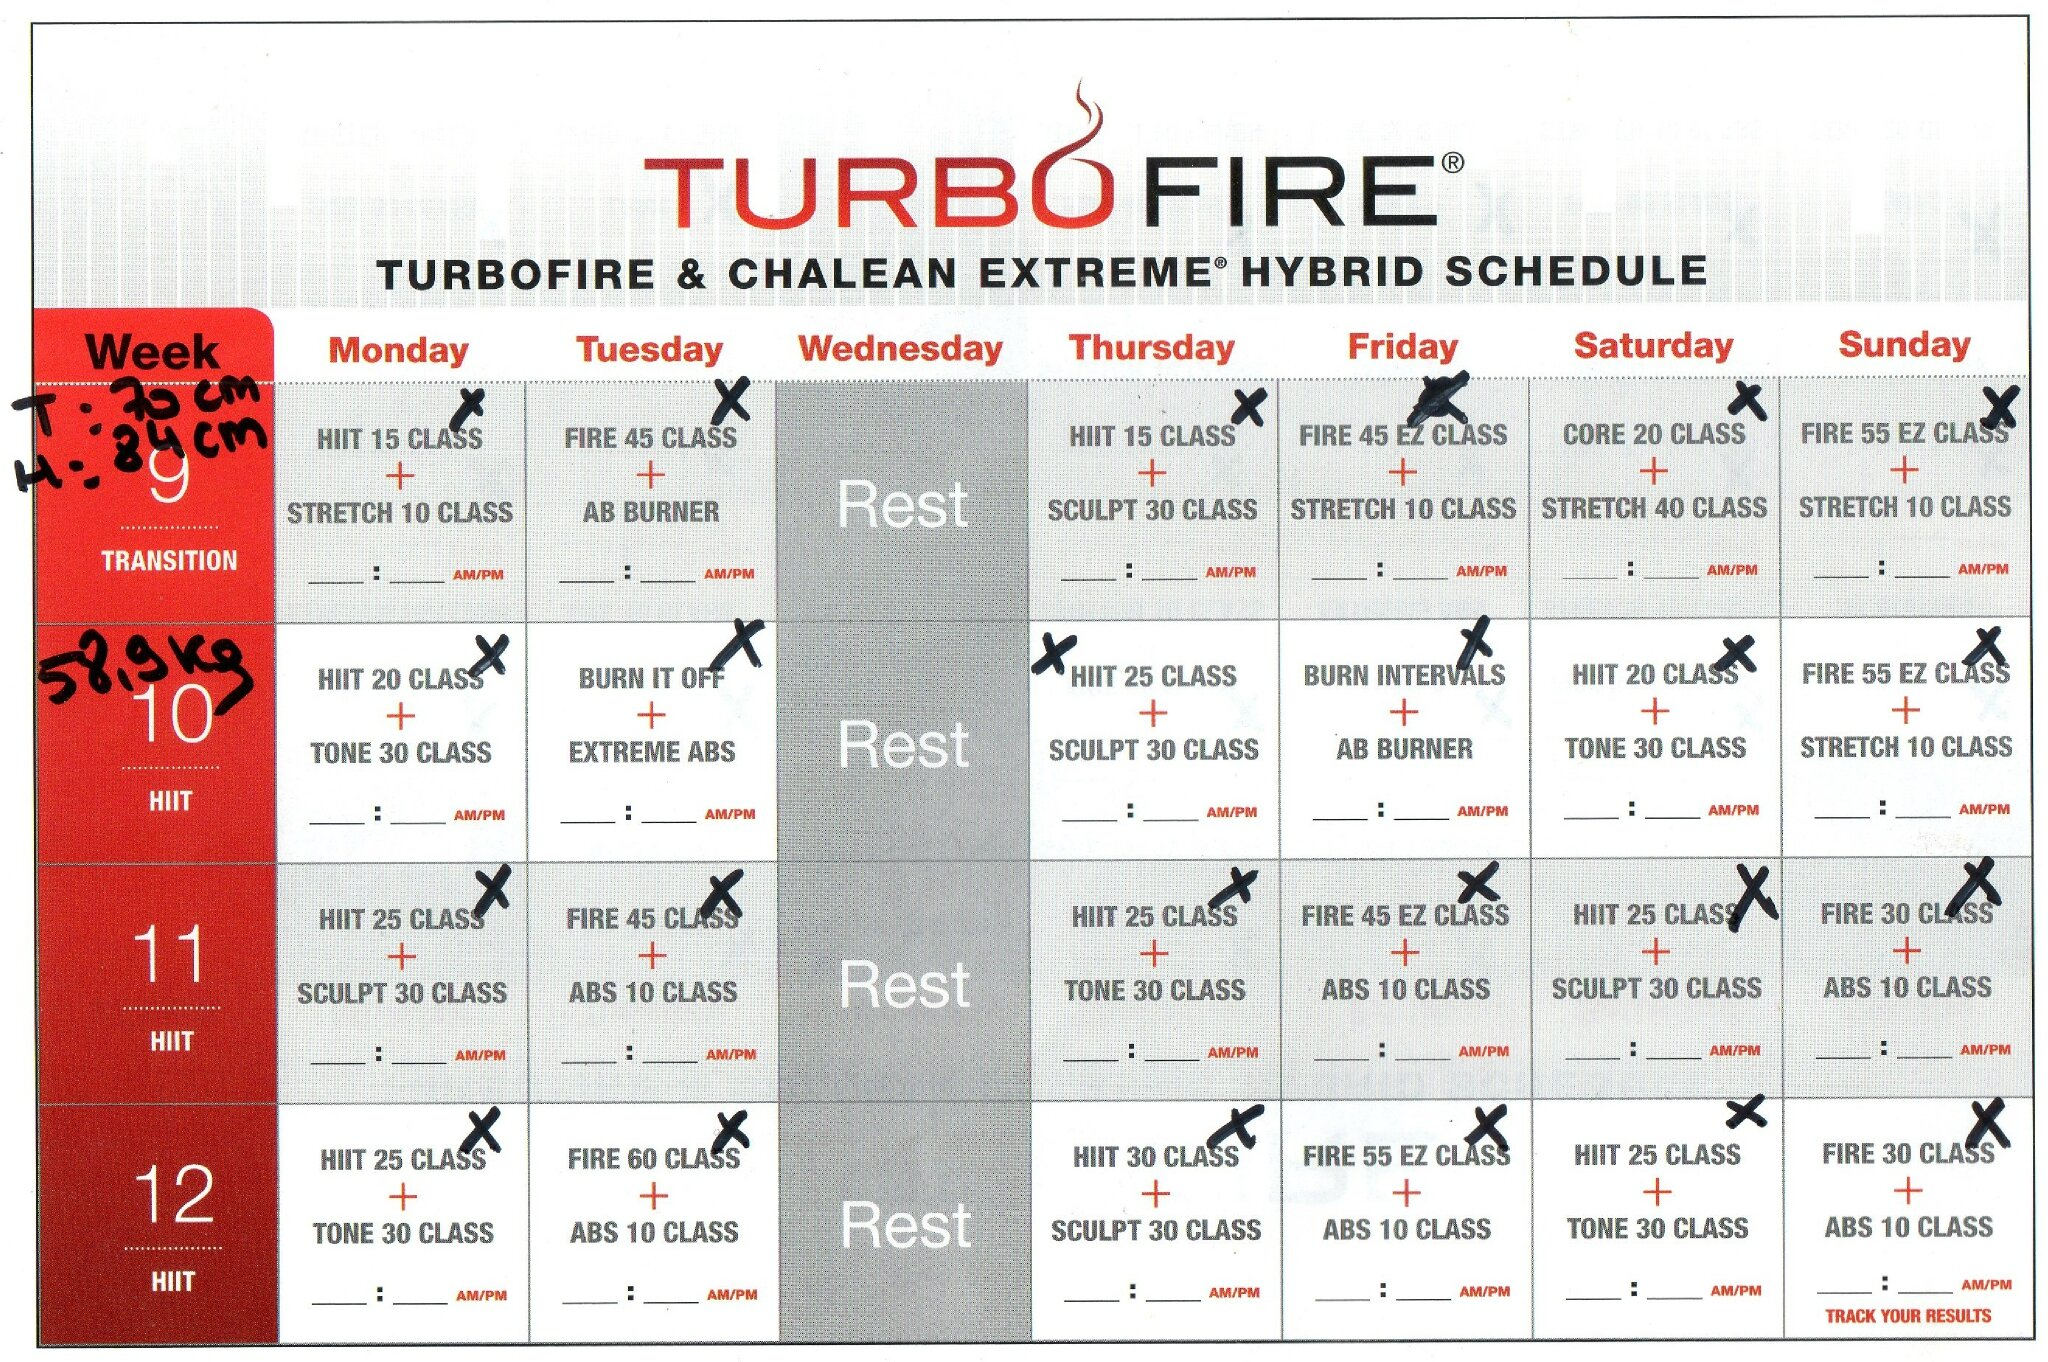 2226kb turbo fire schedule 2048 x 1288 jpeg 1953kb turbo fire workout ...